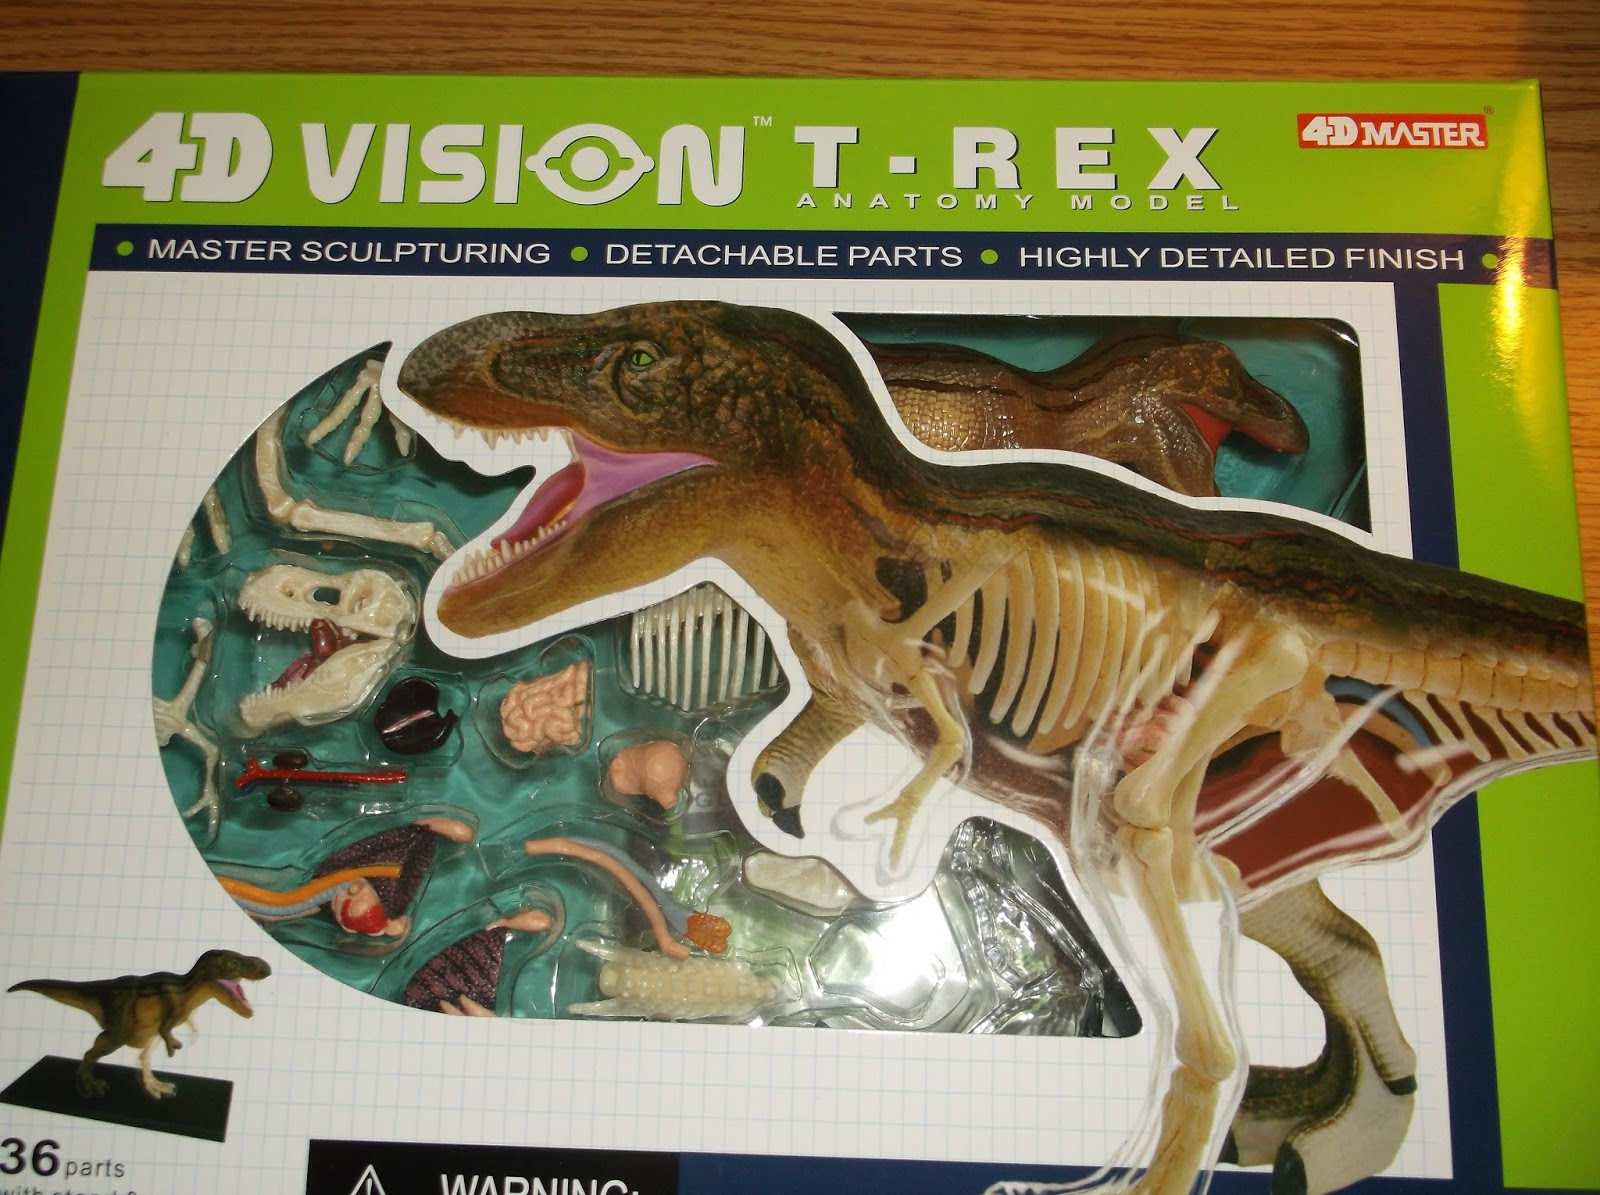 Missys Product Reviews : 4D Vision T-Rex Anatomy Holiday Gift Guide 2015